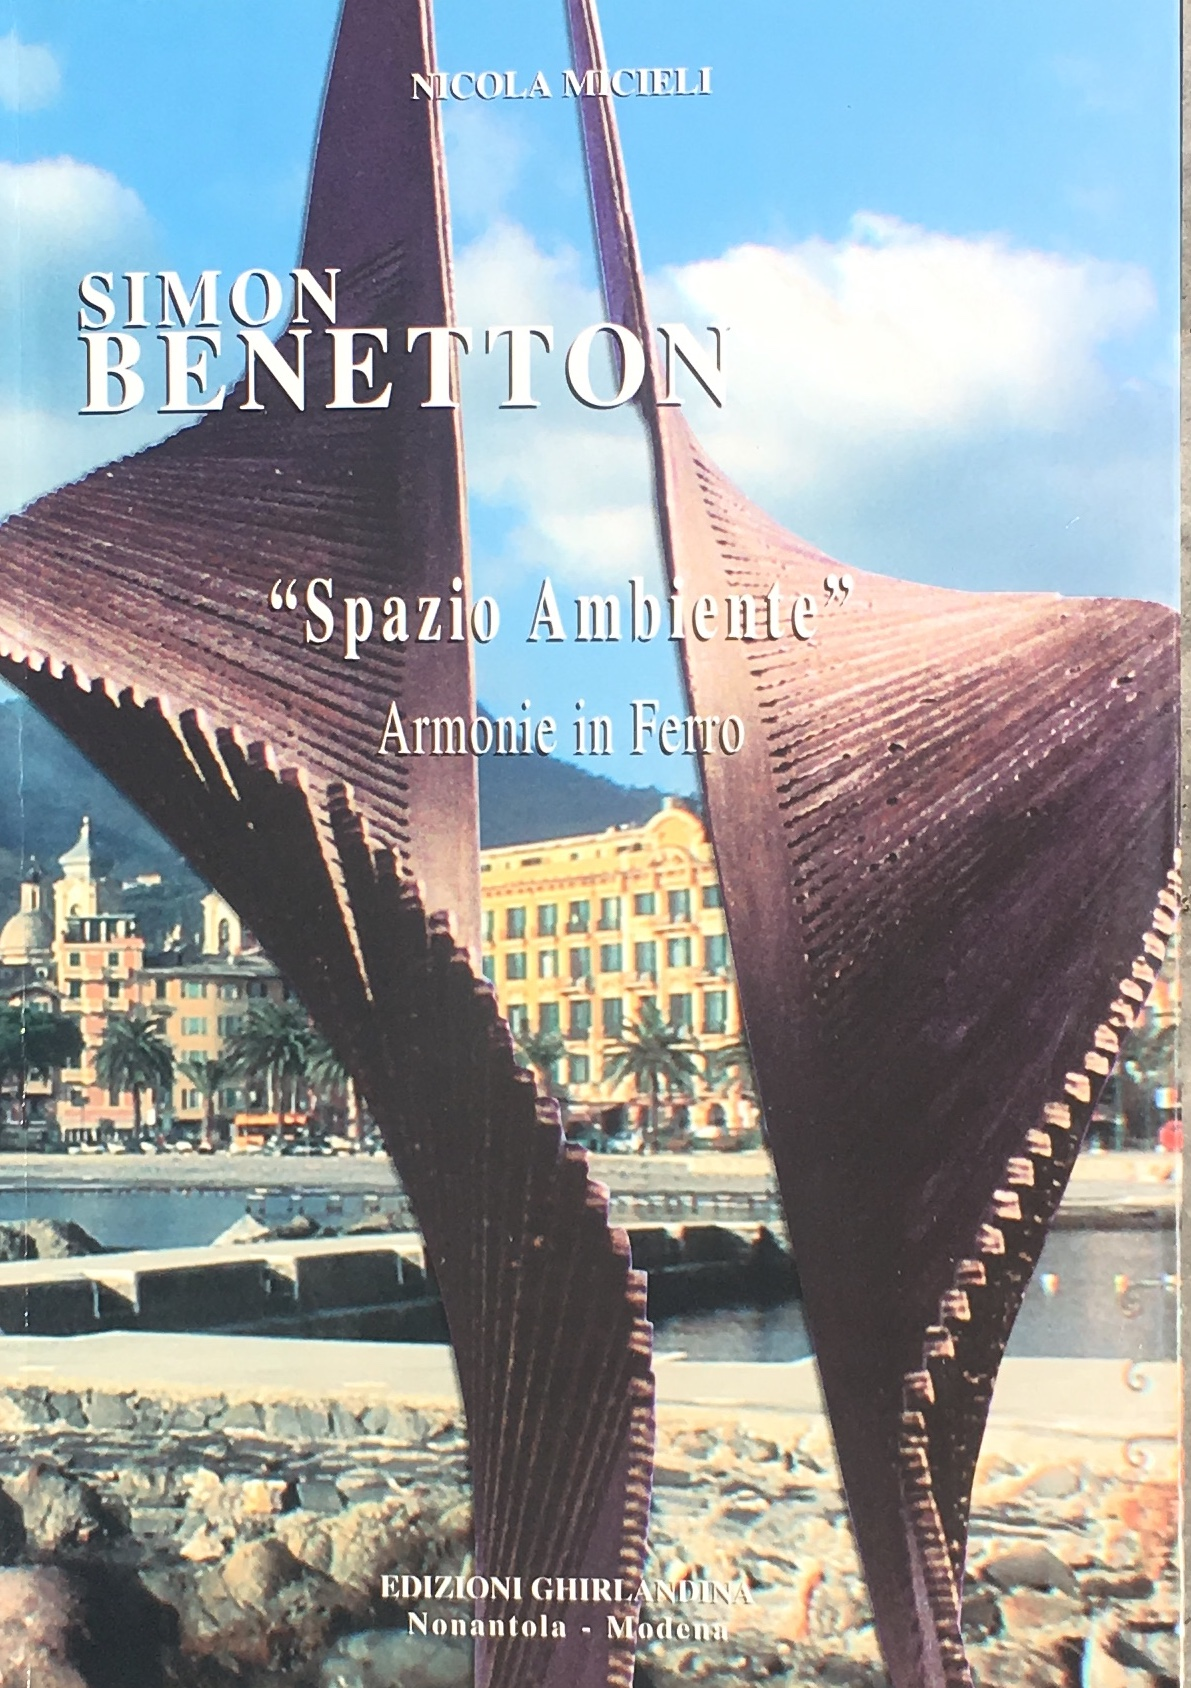 Simon Benetton